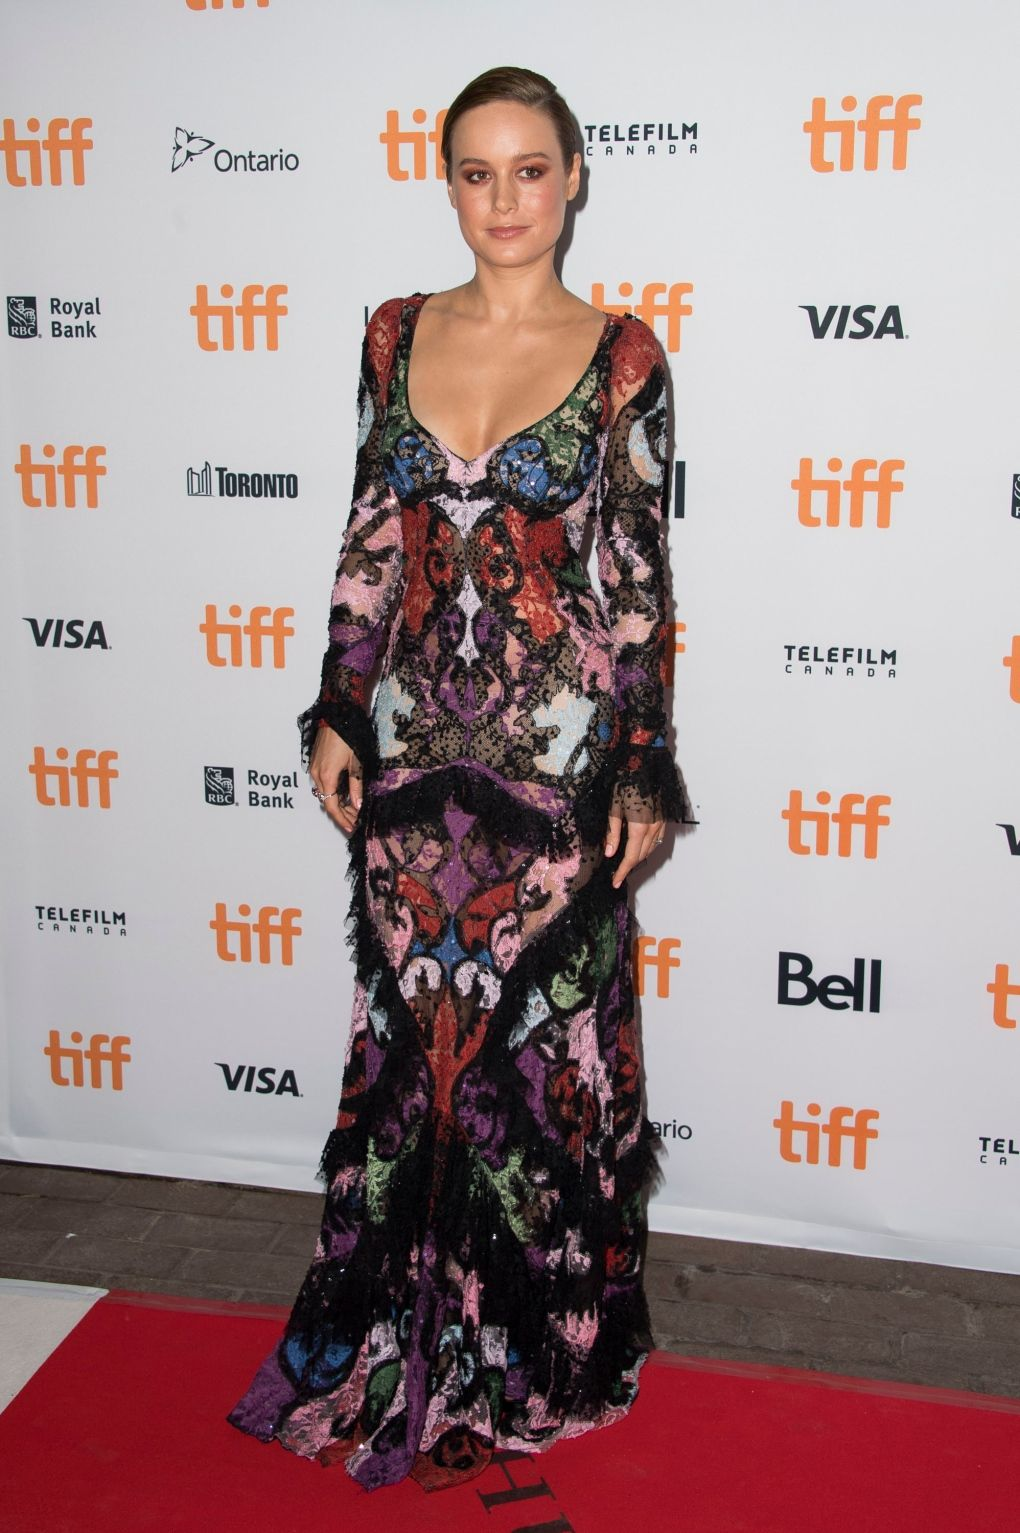 Brie Larson attends the 'Free Fire' premiere on day 1 of the Toronto International Film Festival at the Ryerson Theatre on Thursday, Sept. 8, 2016, in Toronto. (Photo by Arthur Mola/Invision/AP)